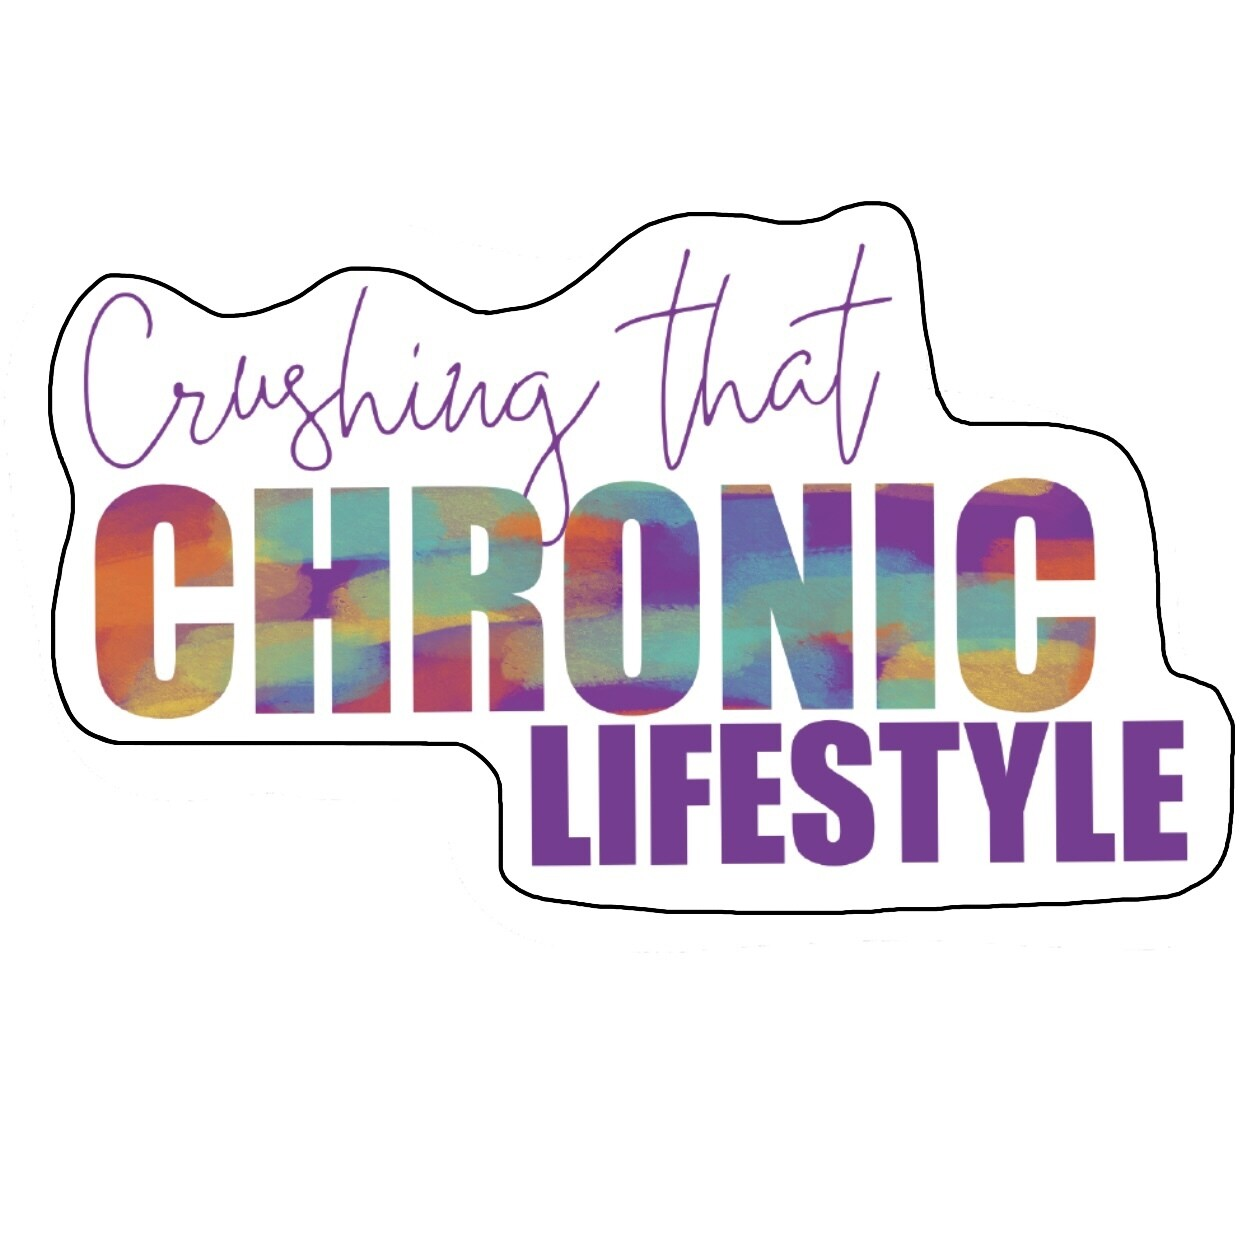 Sticker: Crushing that Chronic Lifestyle™ multi-color